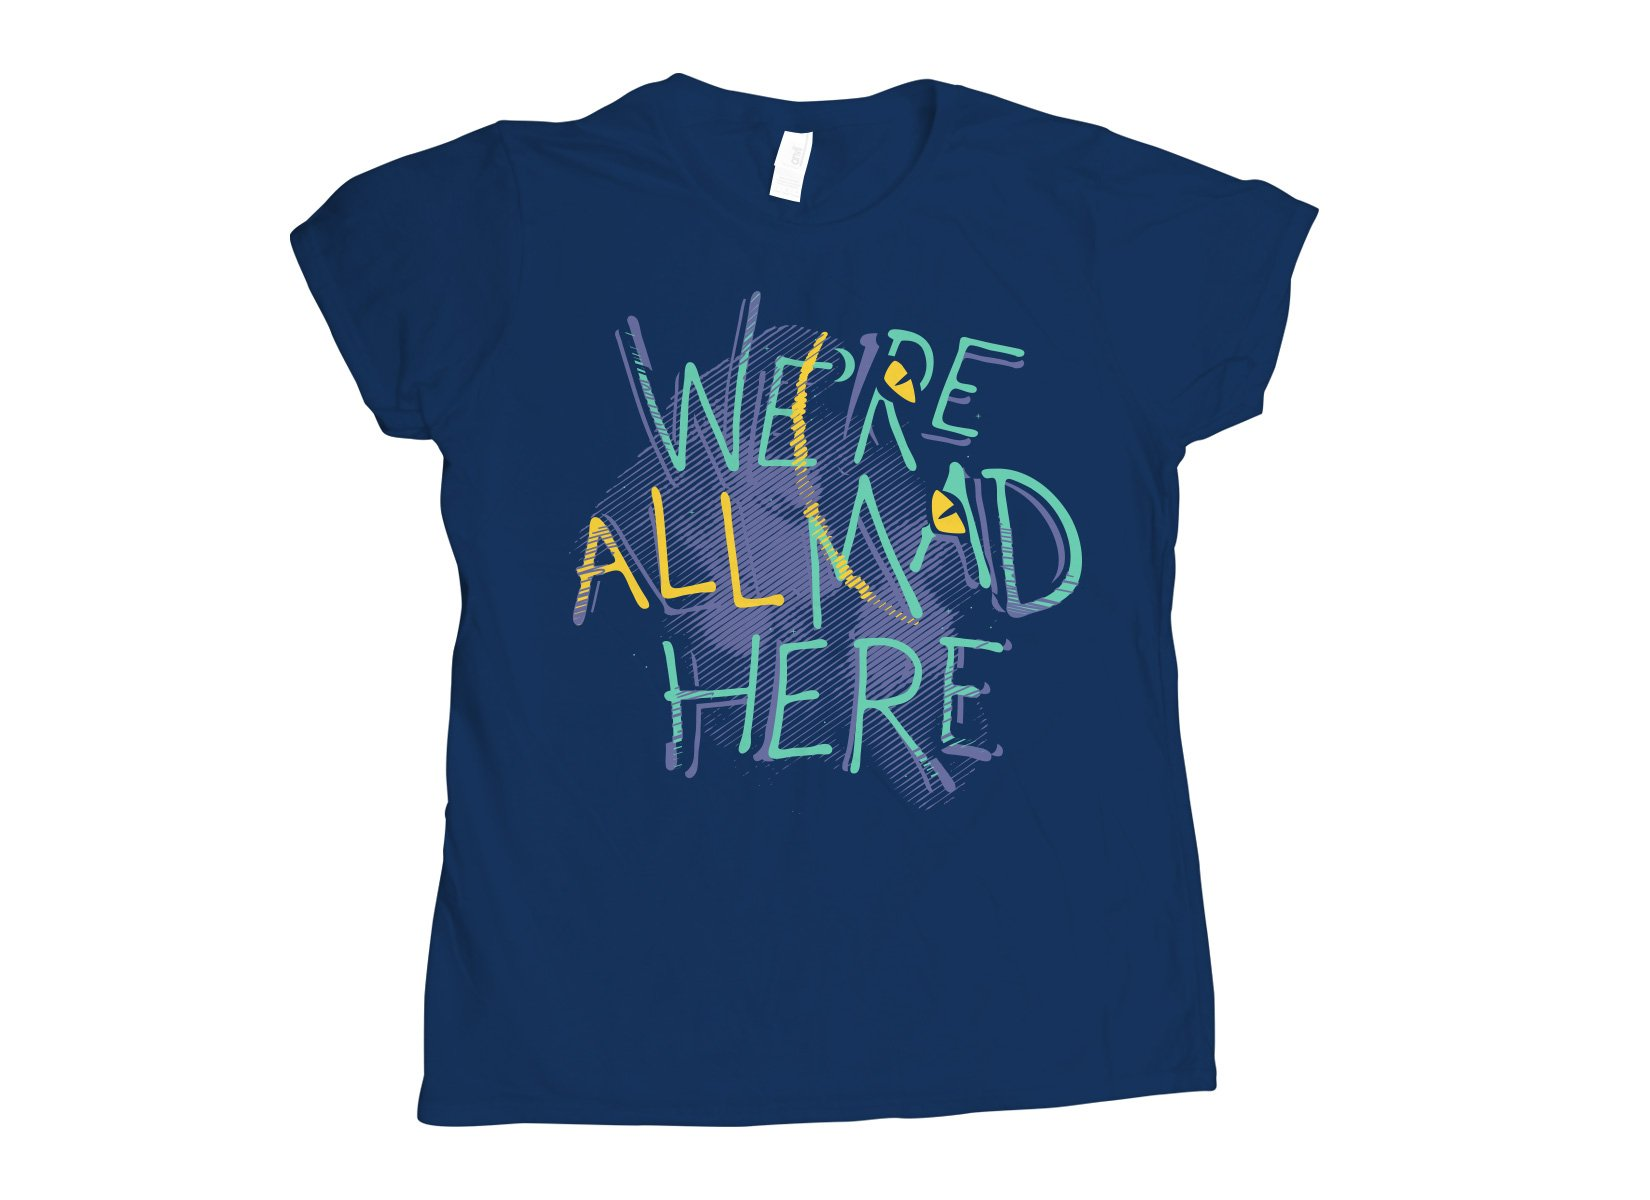 We're All Mad Here on Womens T-Shirt